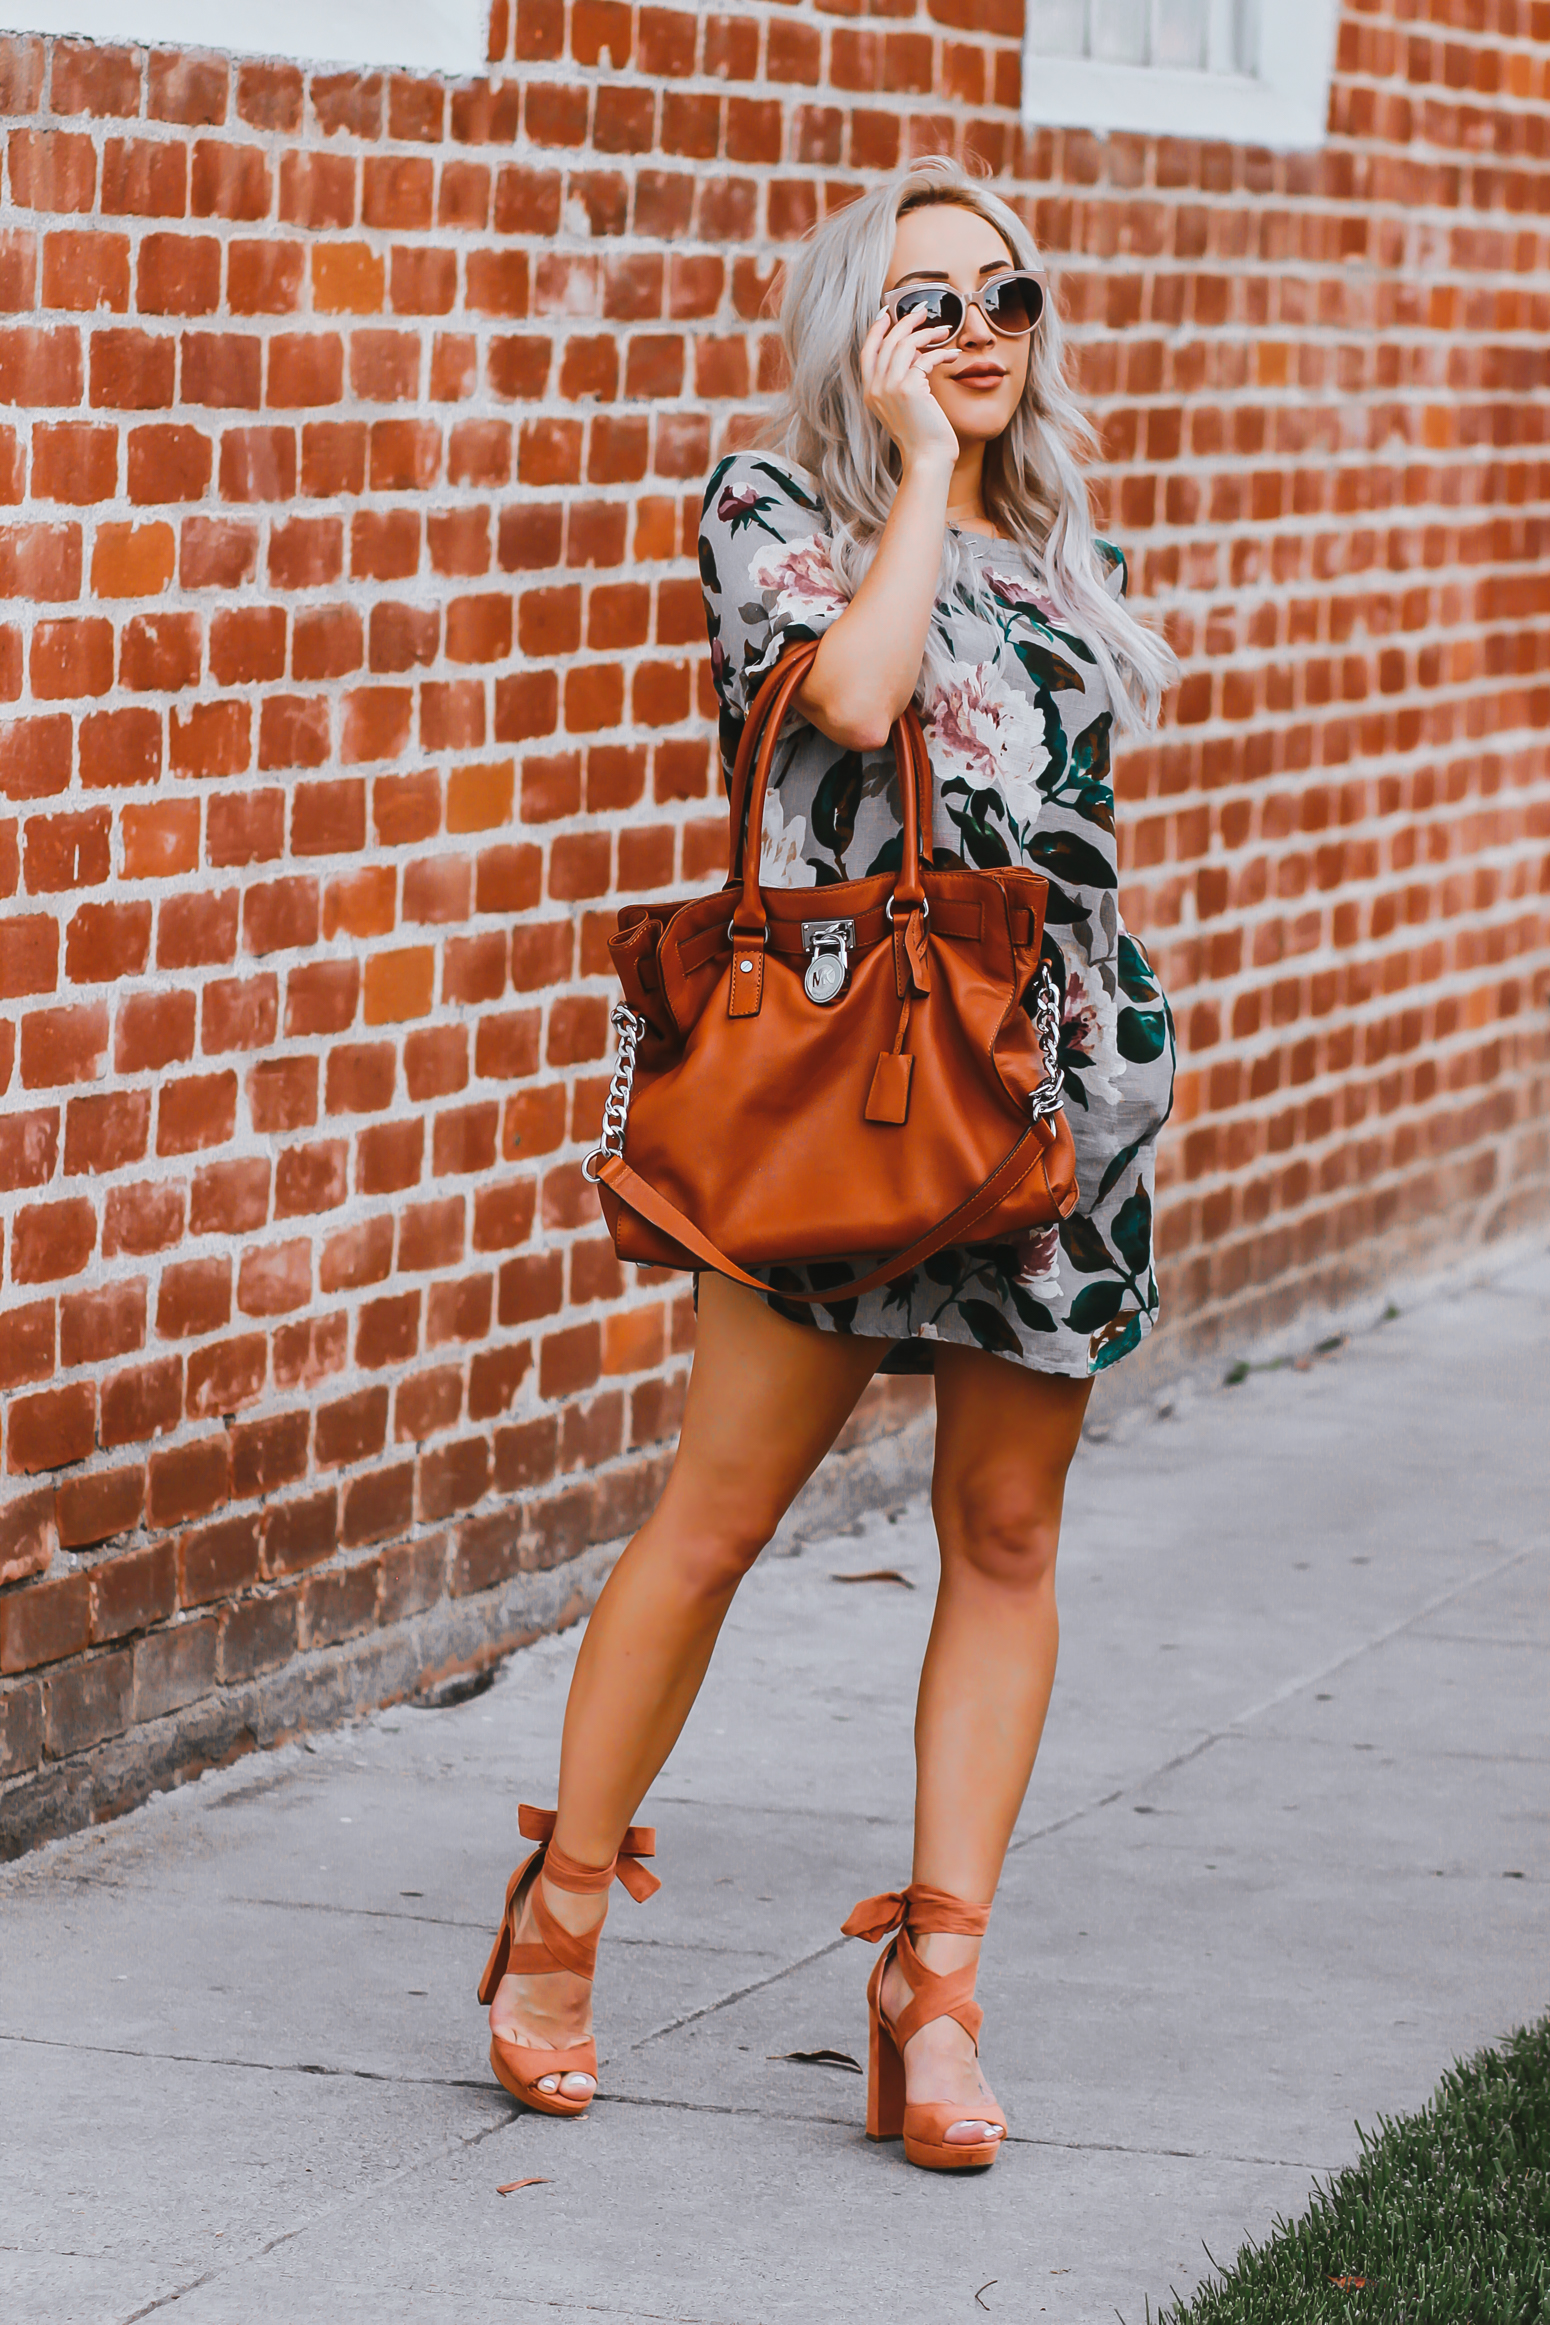 Blondie in the City | Simple Floral Print Dress | Simple Yet Chic